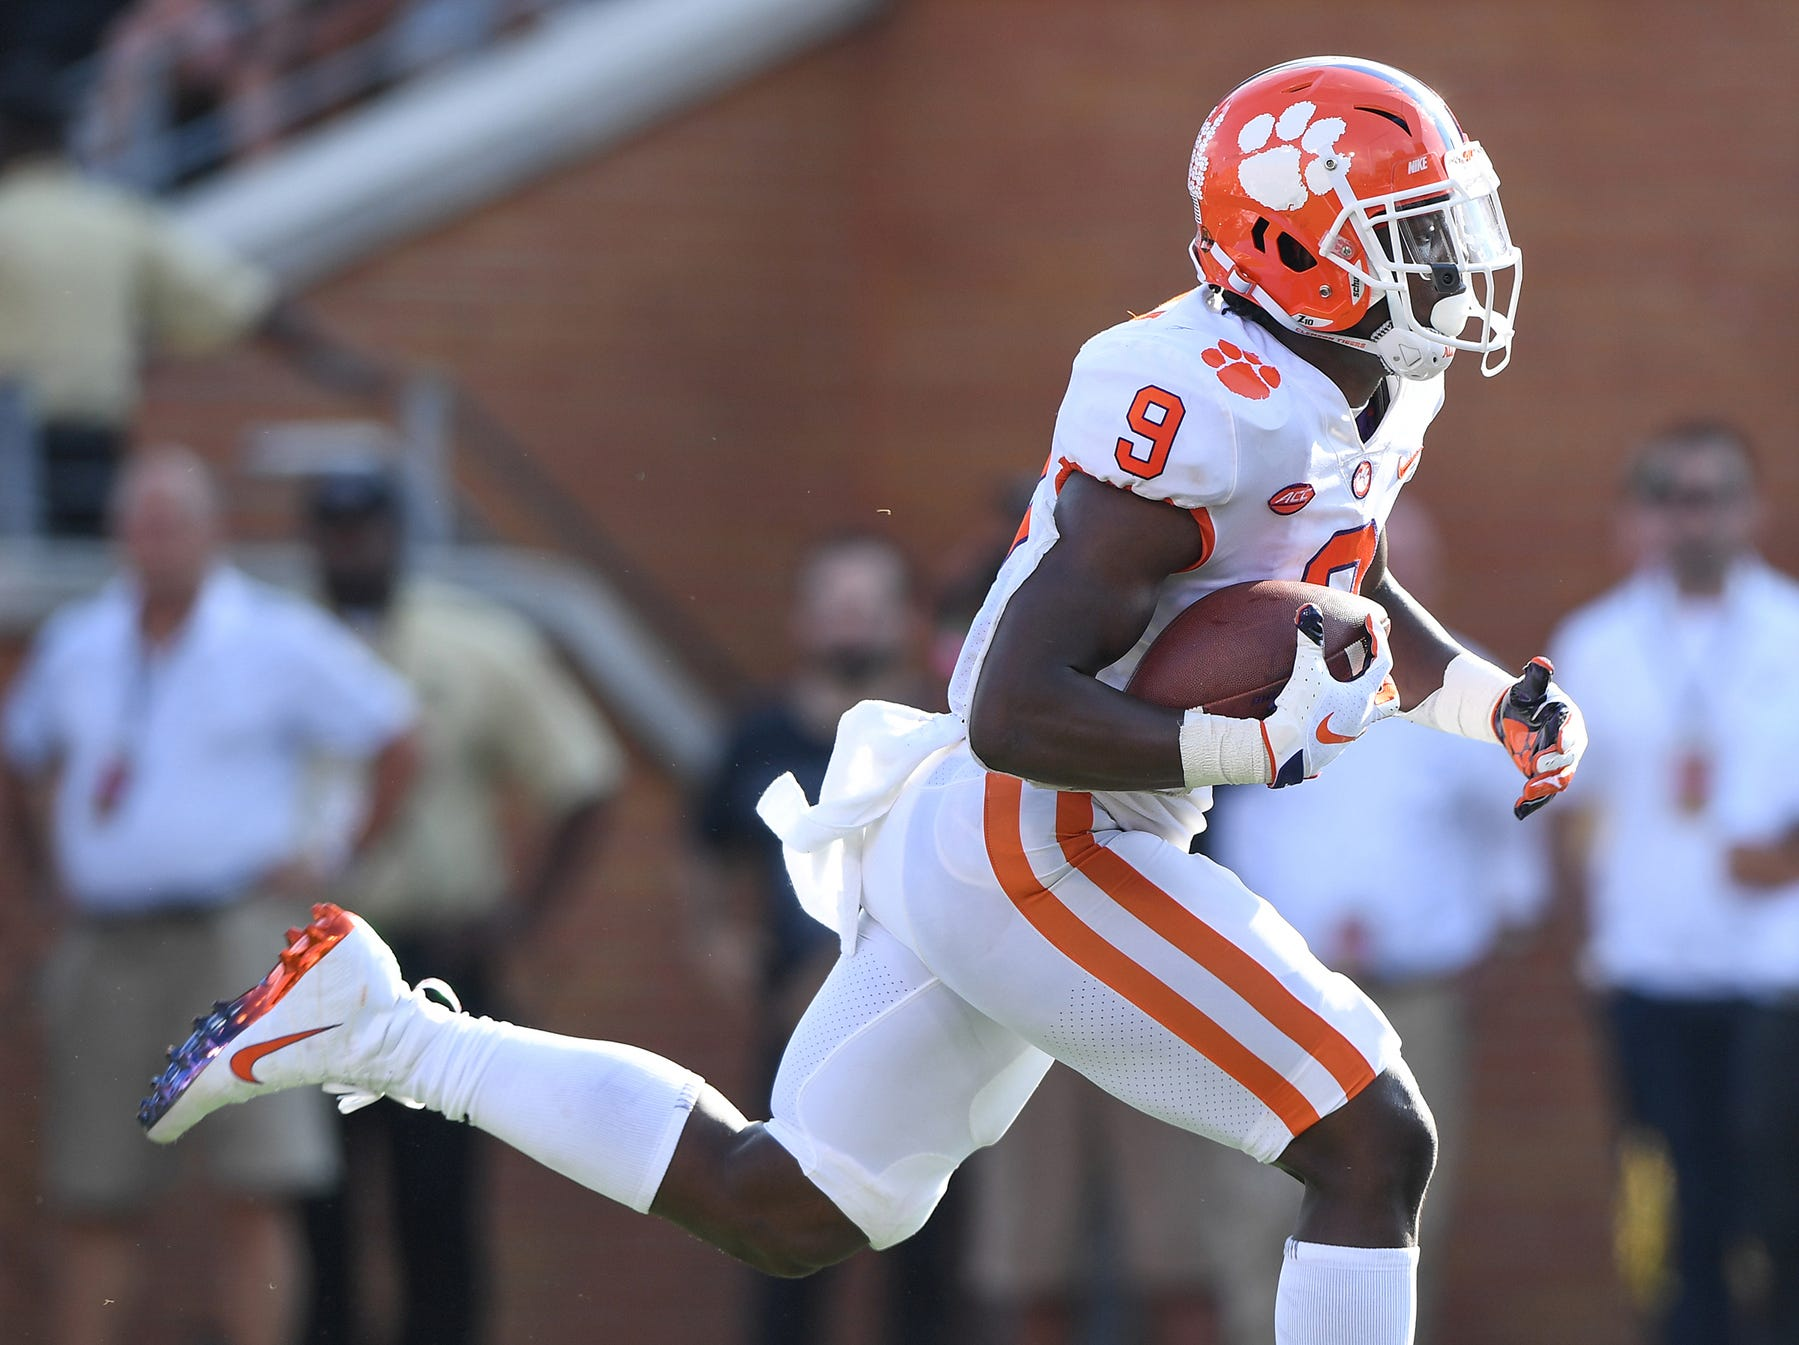 Clemson running back Travis Etienne (9) scores against Wake Forest during the 2nd quarter at BB&T Field in Winston Salem, N.C. Saturday, October 6, 2018.